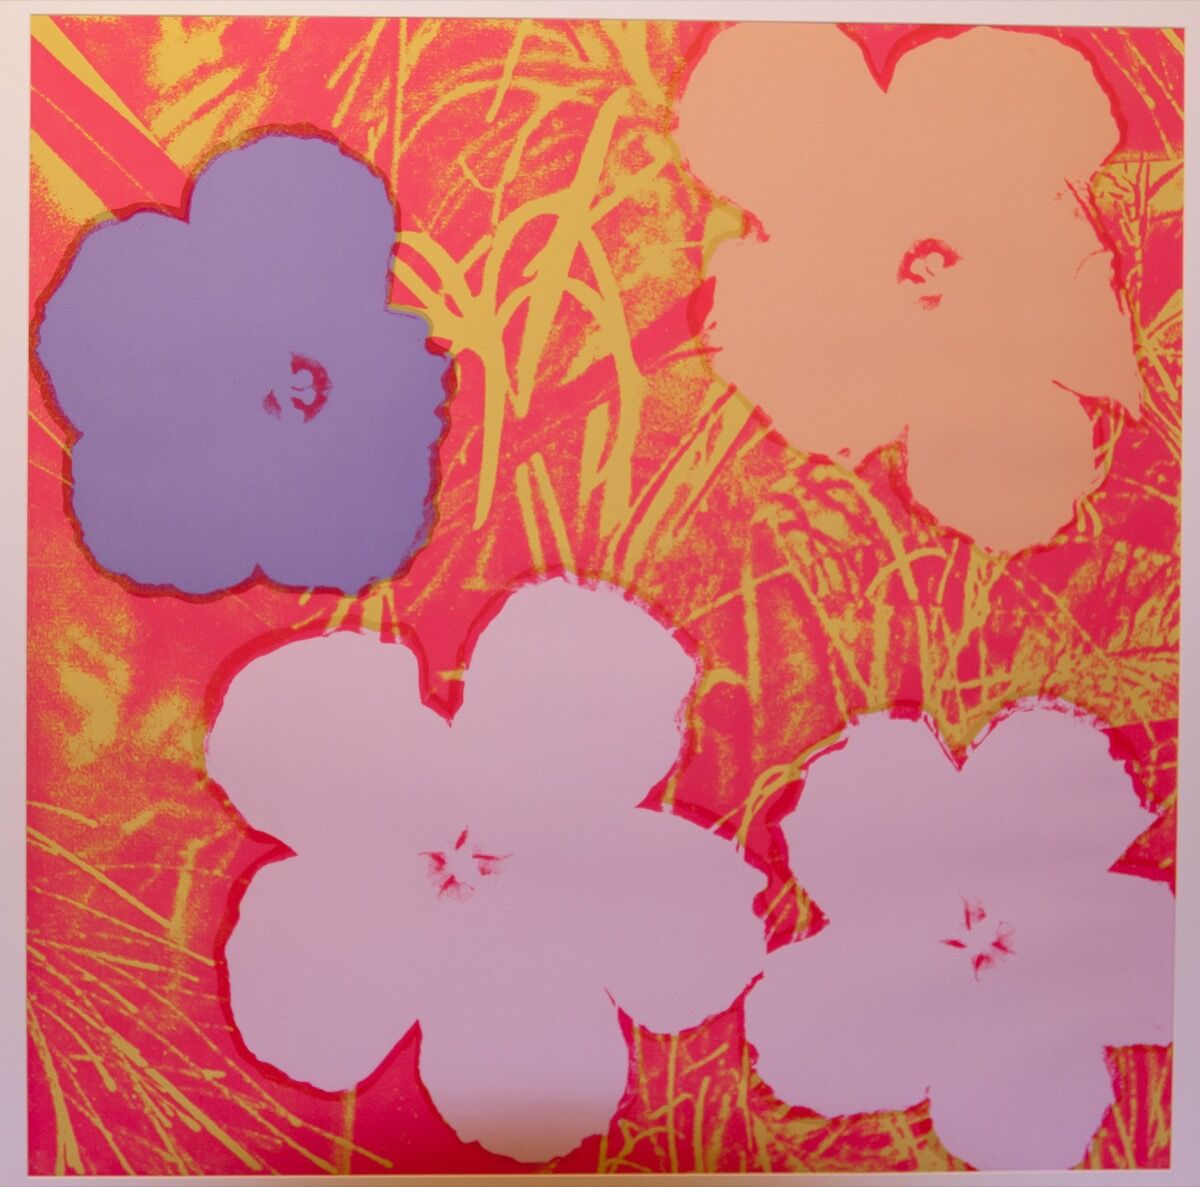 Andy Warhol, Flowers, 1974. Courtesy of NYC Health + Hospitals.